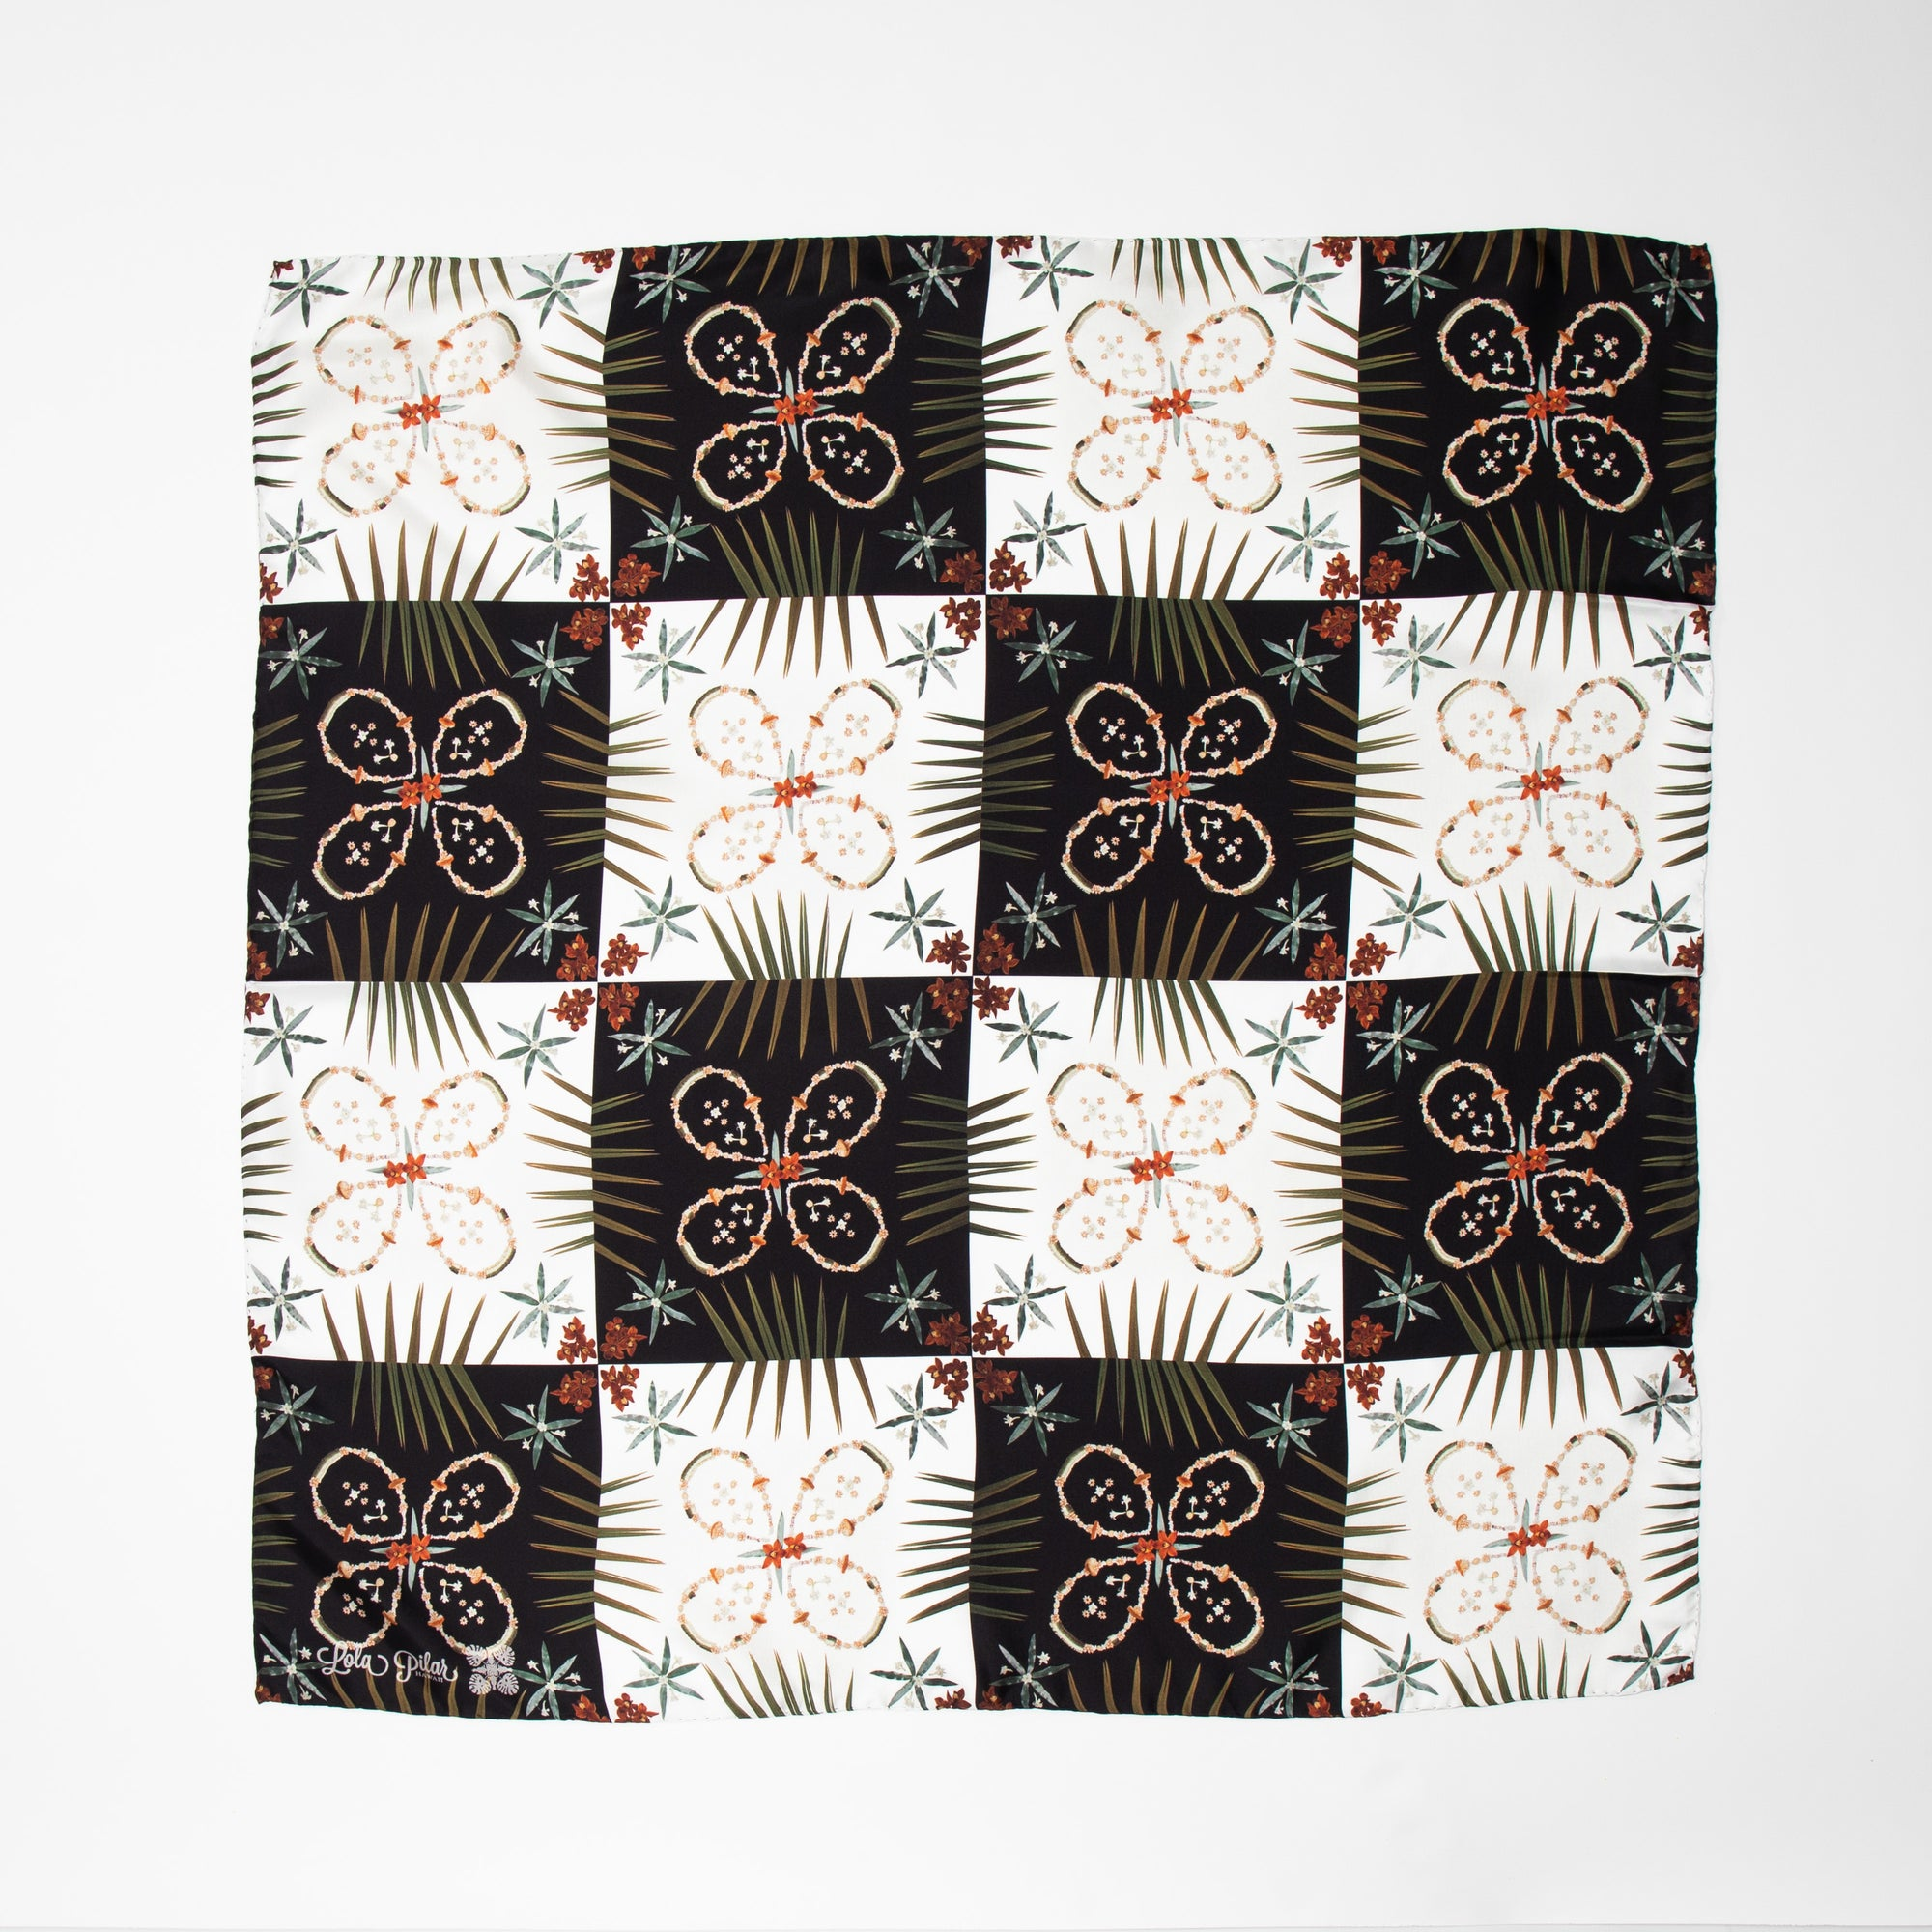 black and white check patterned silk scarf with flower details